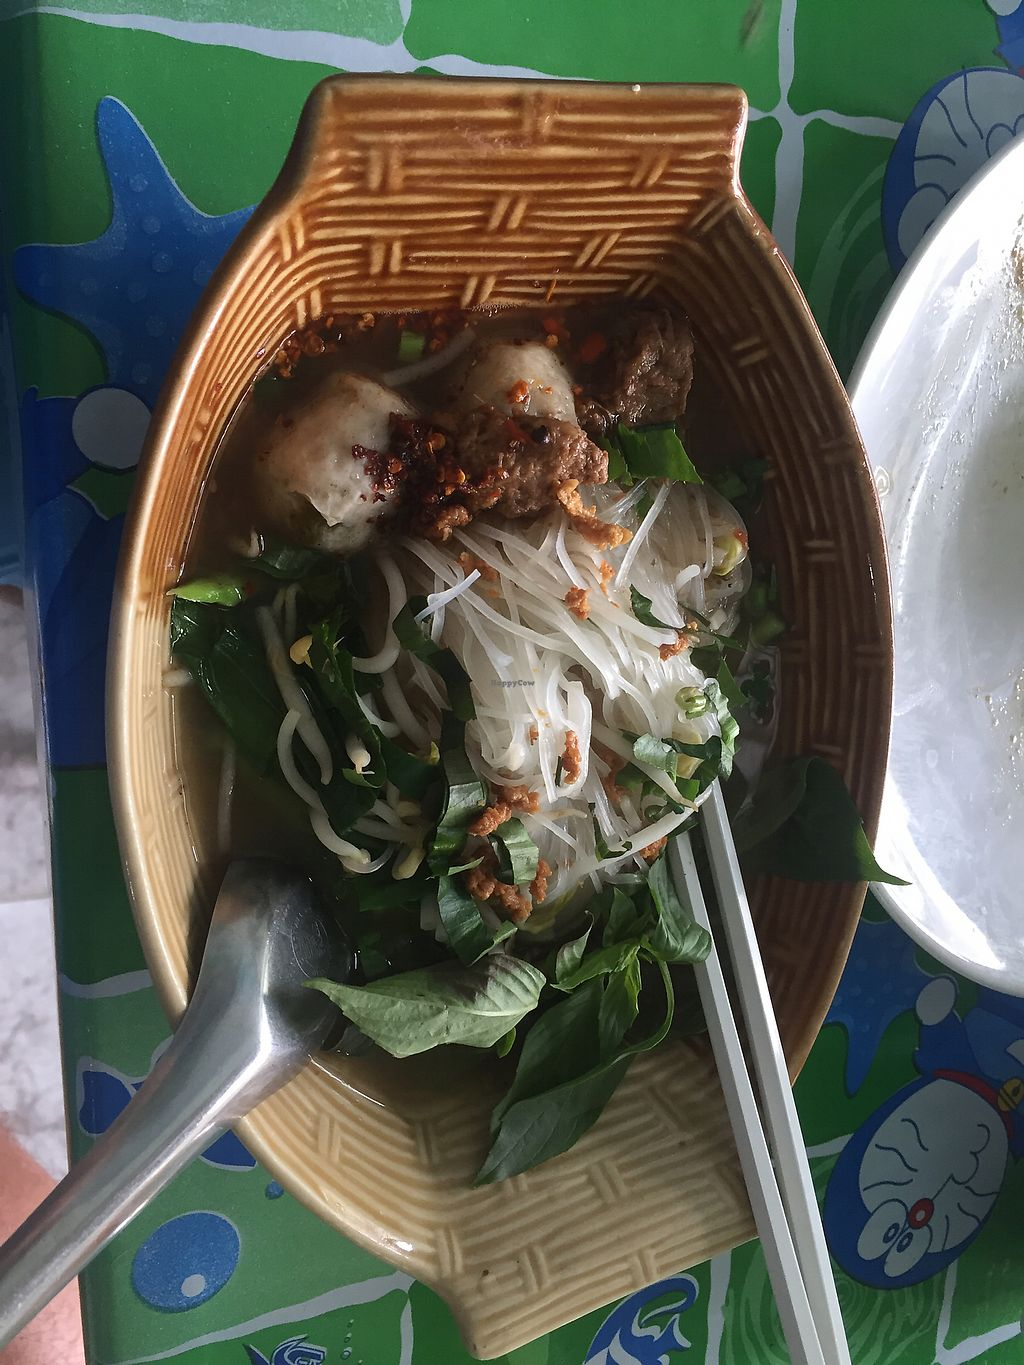 """Photo of Ahan Jay Taan Bun  by <a href=""""/members/profile/PaulBown"""">PaulBown</a> <br/>so nice <br/> August 15, 2017  - <a href='/contact/abuse/image/10076/292832'>Report</a>"""